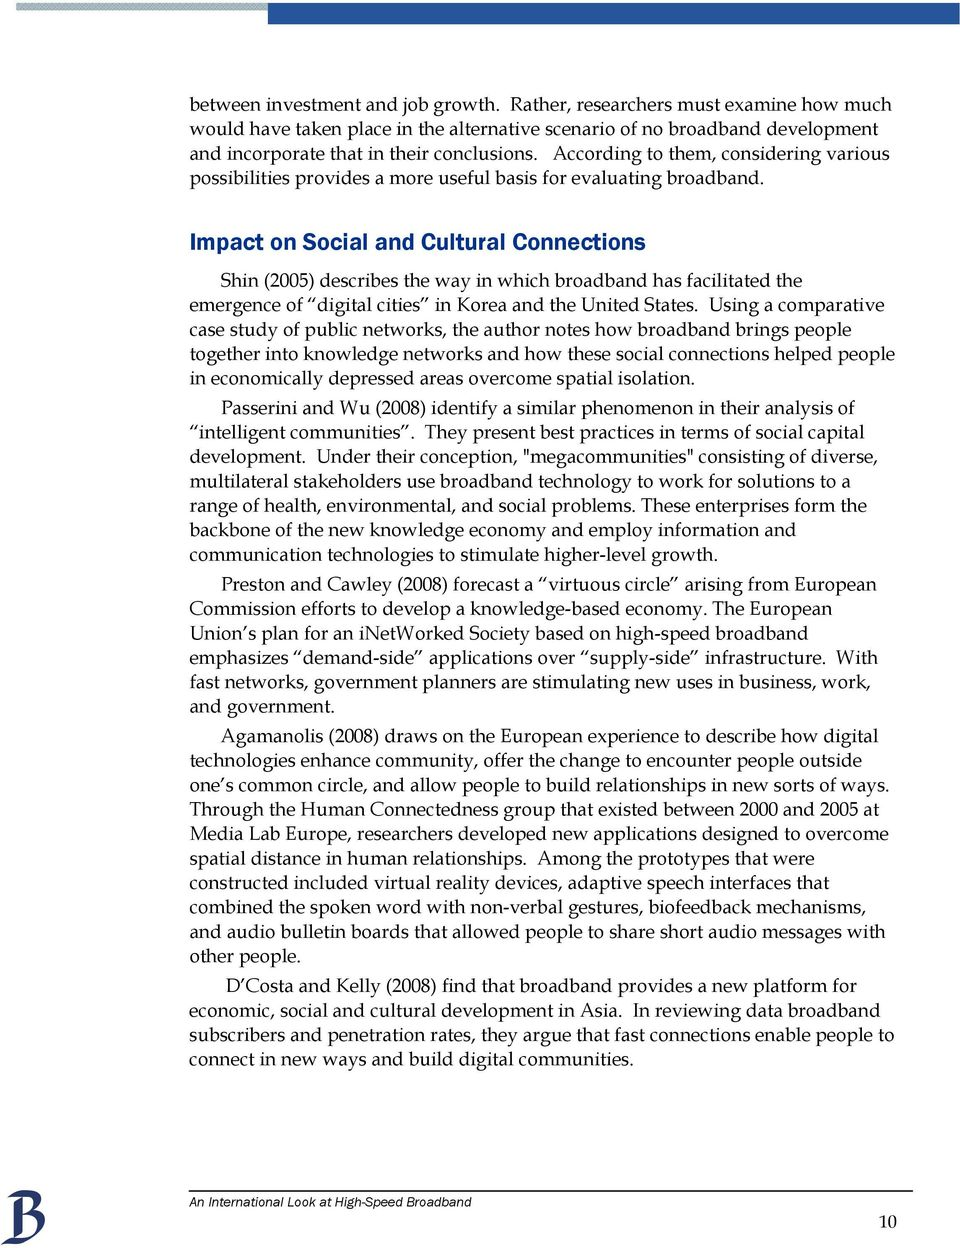 Impact on Social and Cultural Connections Shin (2005) describes the way in which broadband has facilitated the emergence of digital cities in Korea and the United States.